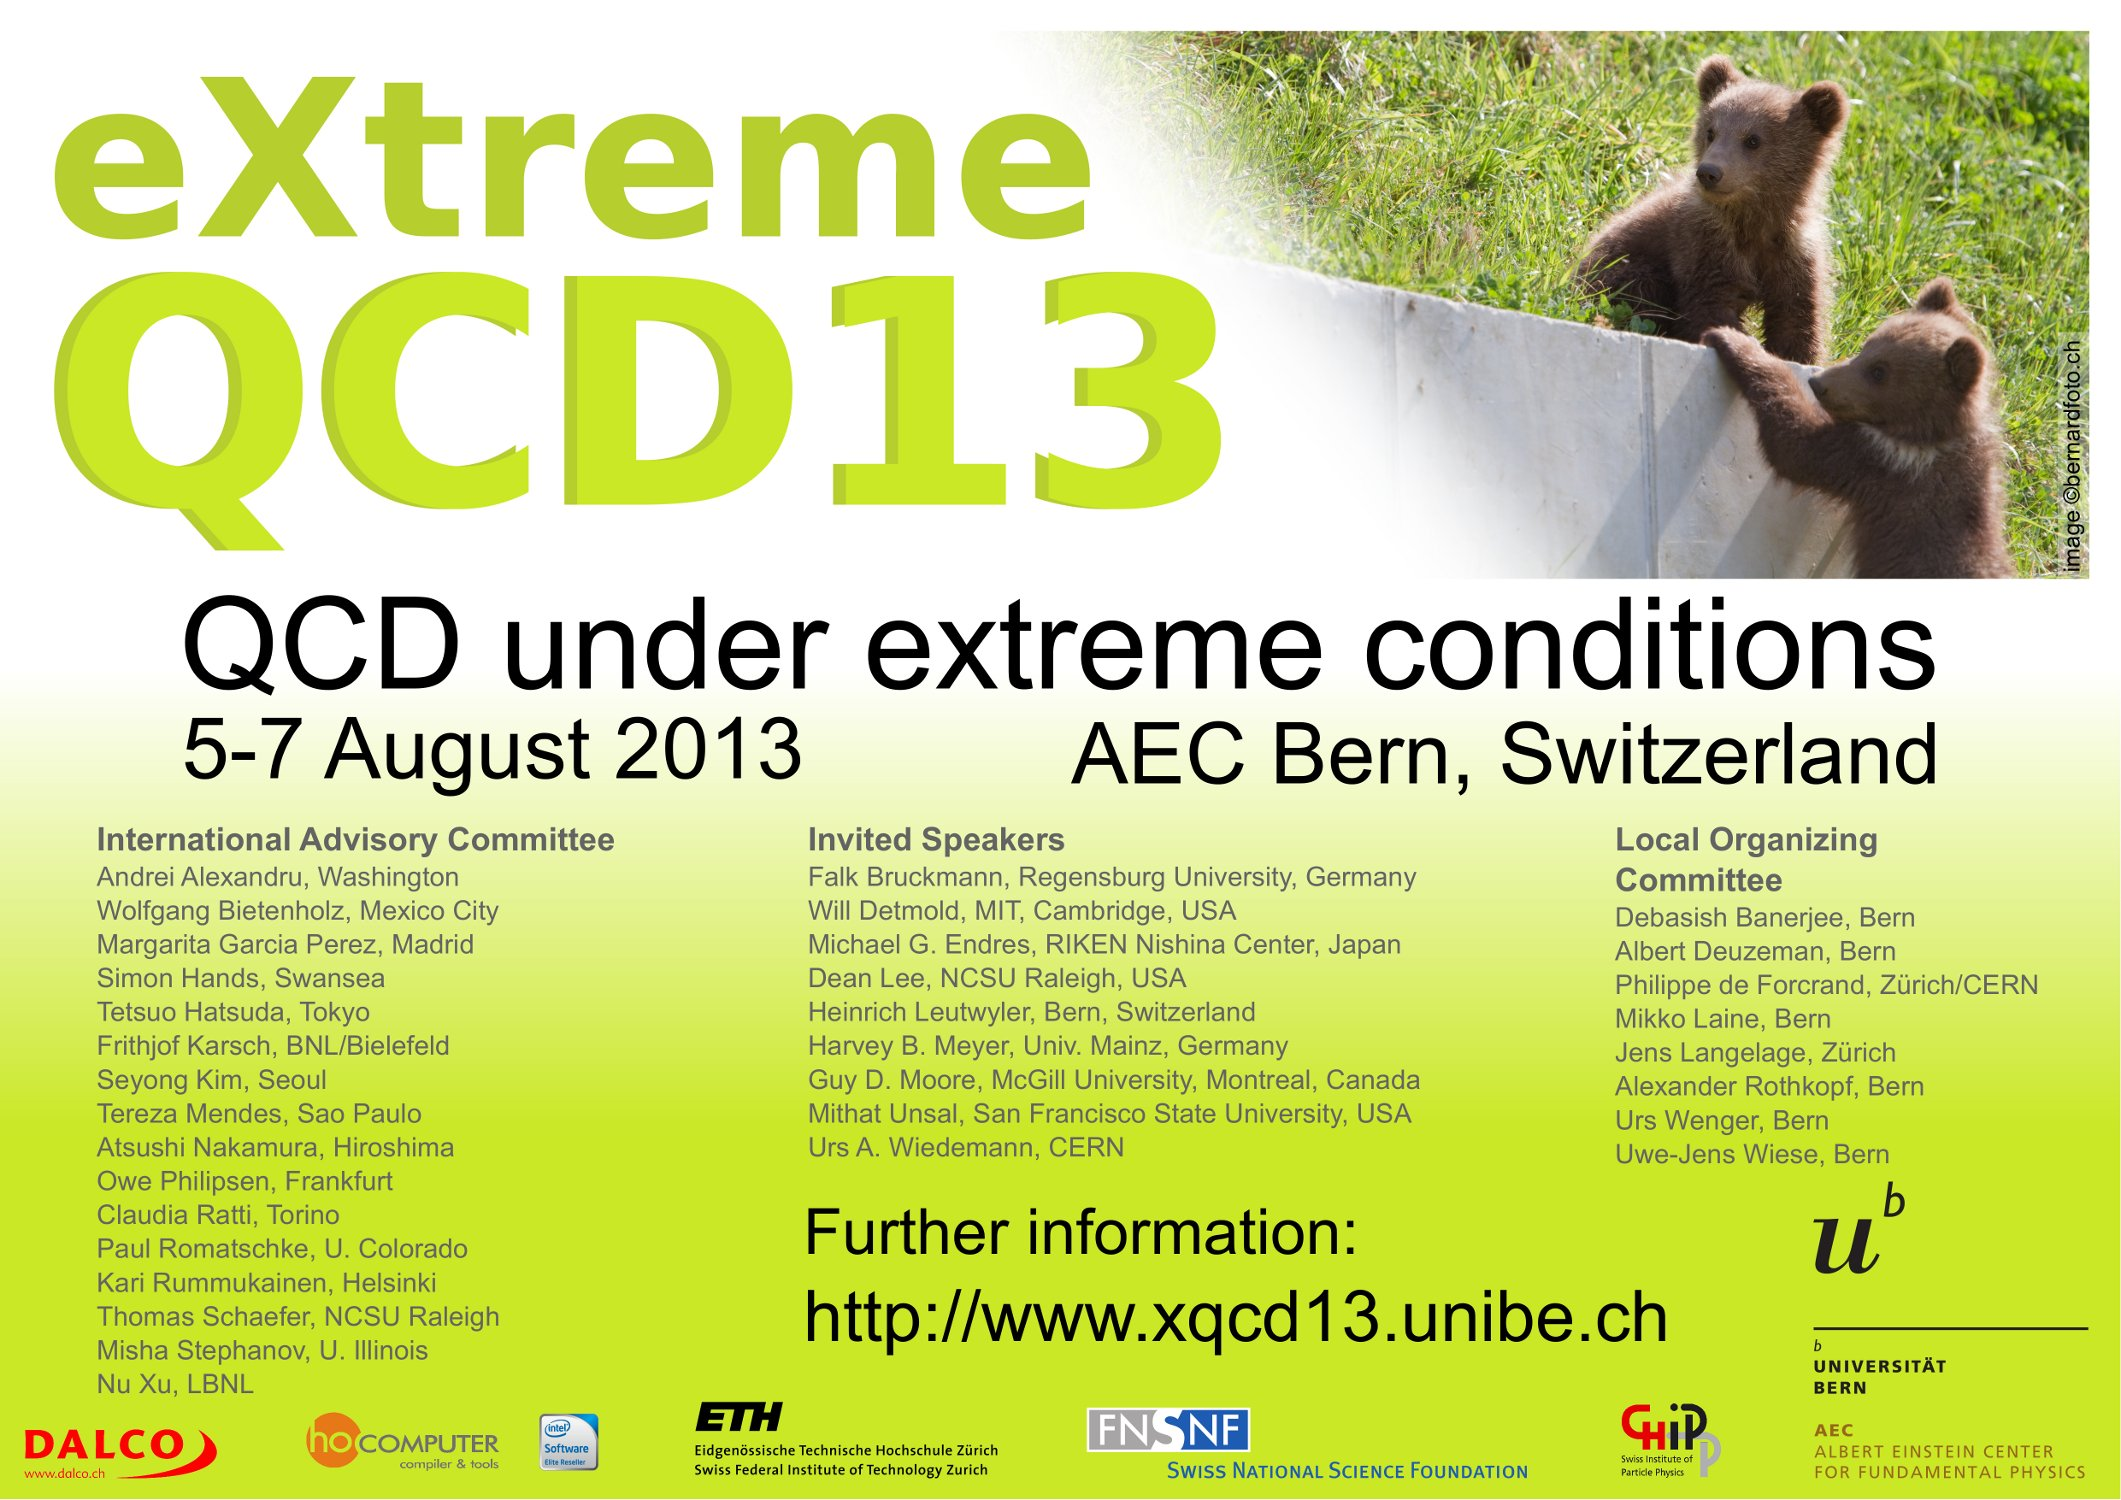 XQCD13 workshop poster